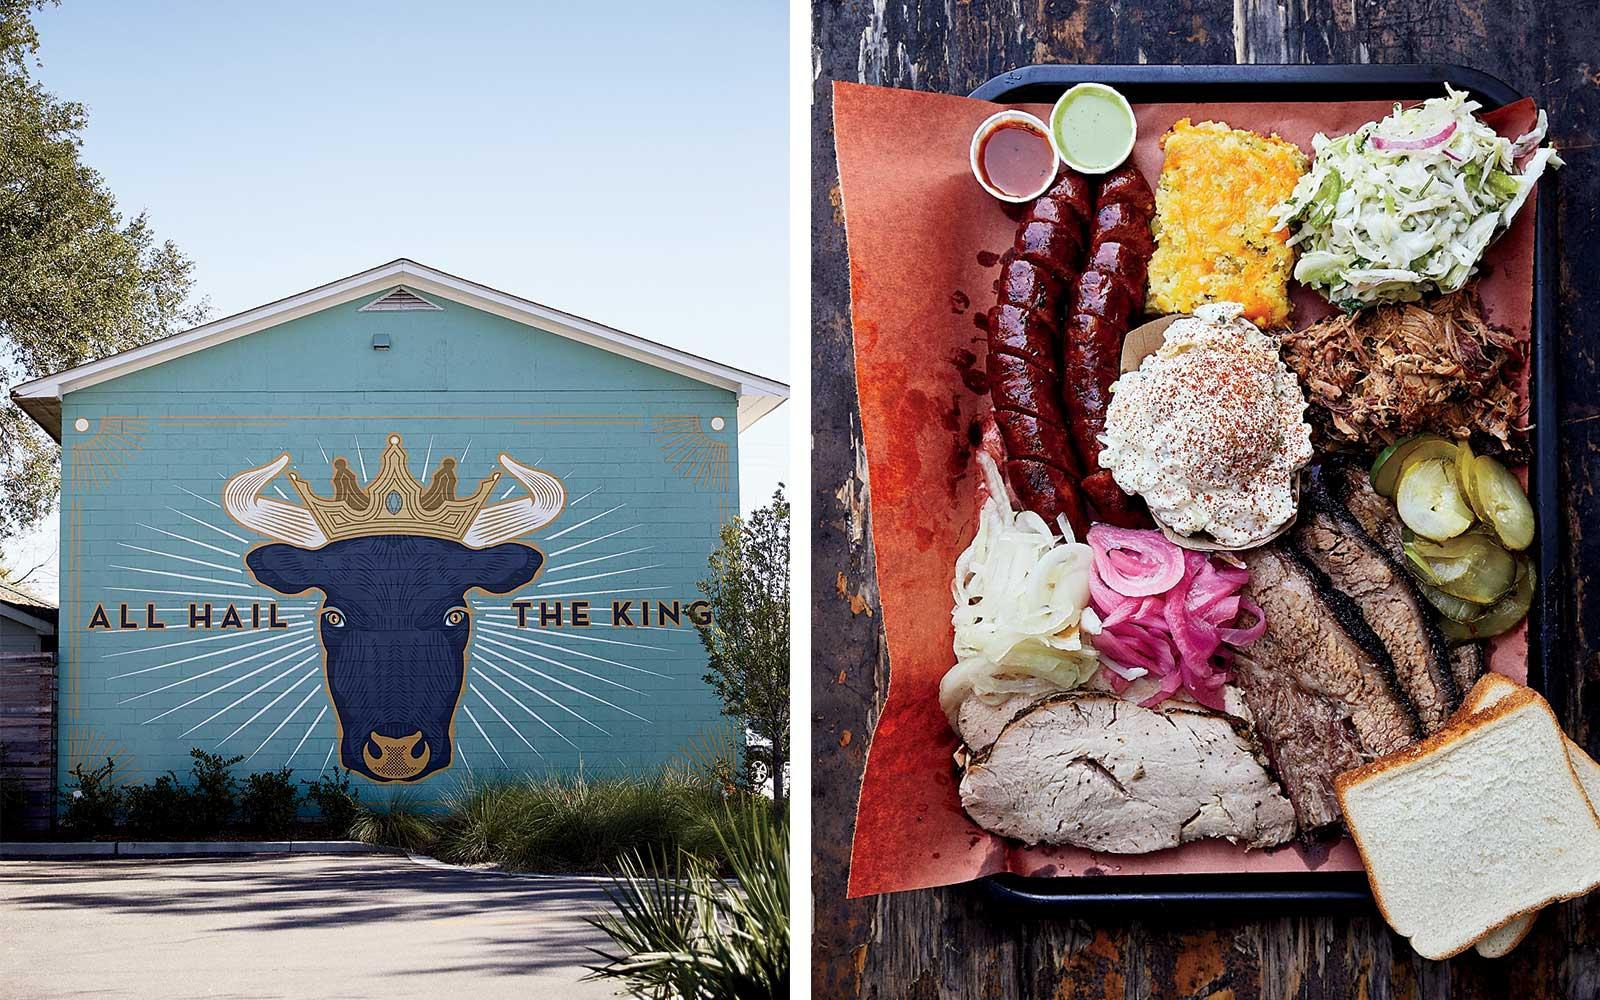 Lewis BBQ serves Texas style barbecue in Charleston, SC